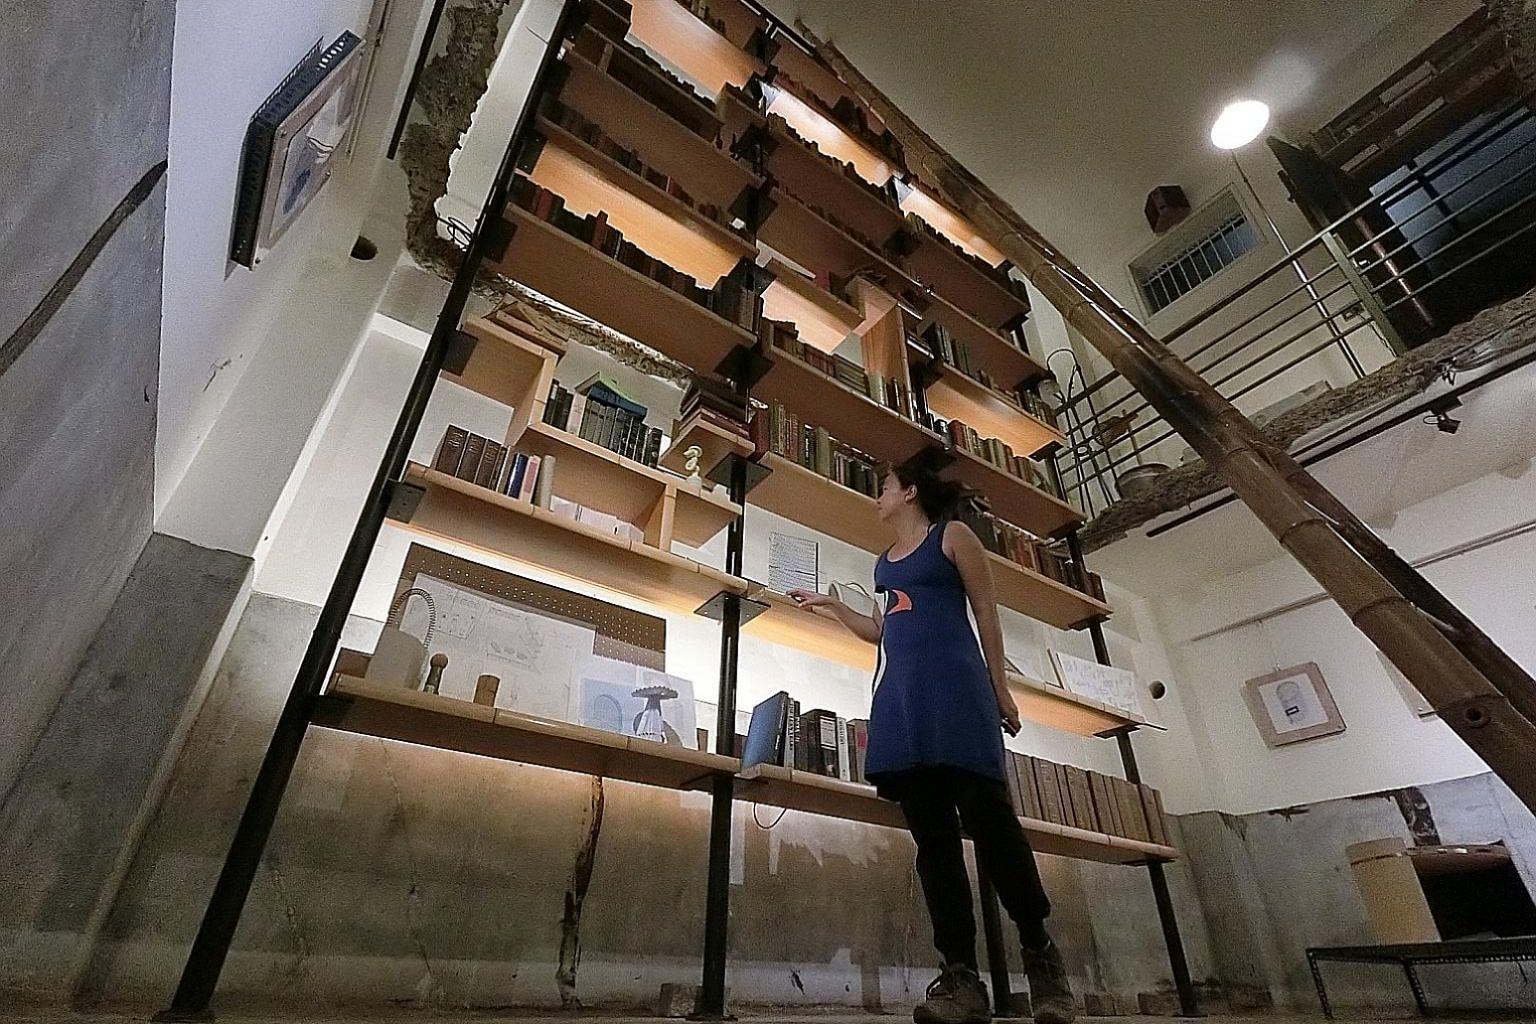 You can read all day at book-themed CaoJi Book Inn (above) in Tainan, where dormitory beds are tucked into book shelves.